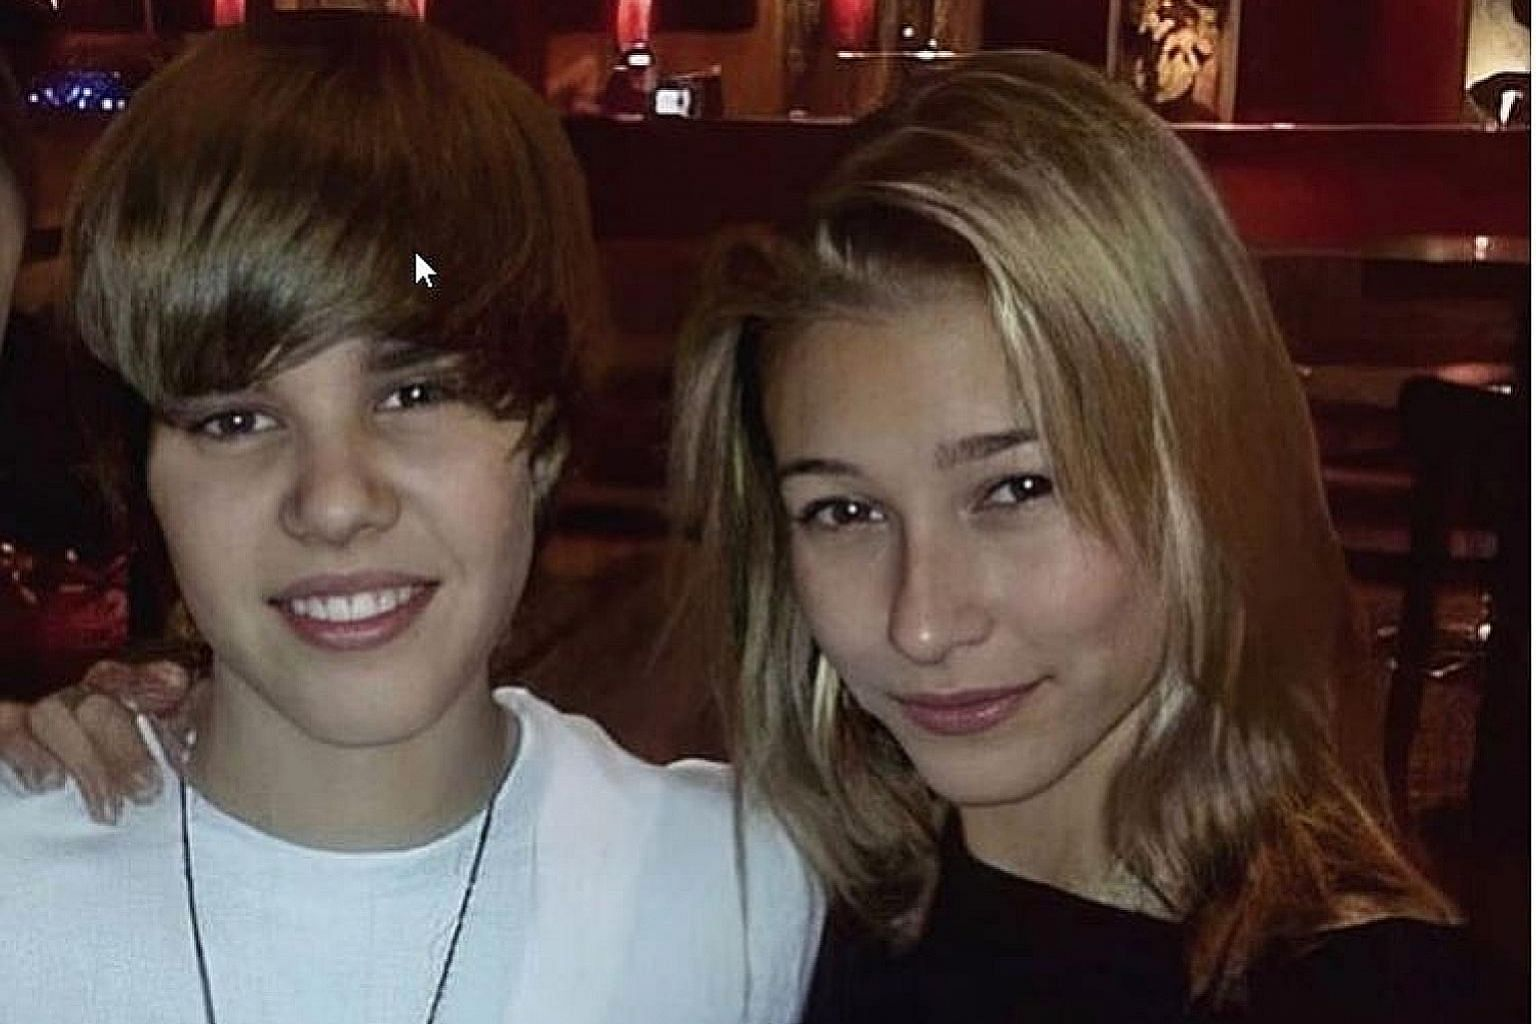 """BLAST FROM THE PAST: Justin Bieber and Hailey Baldwin first said """"I do"""" on Sept 13 last year in a spartan New York courthouse. On Monday evening, they married again, this time before 154 guests in a swanky waterfront resort in South Carolina. While i"""